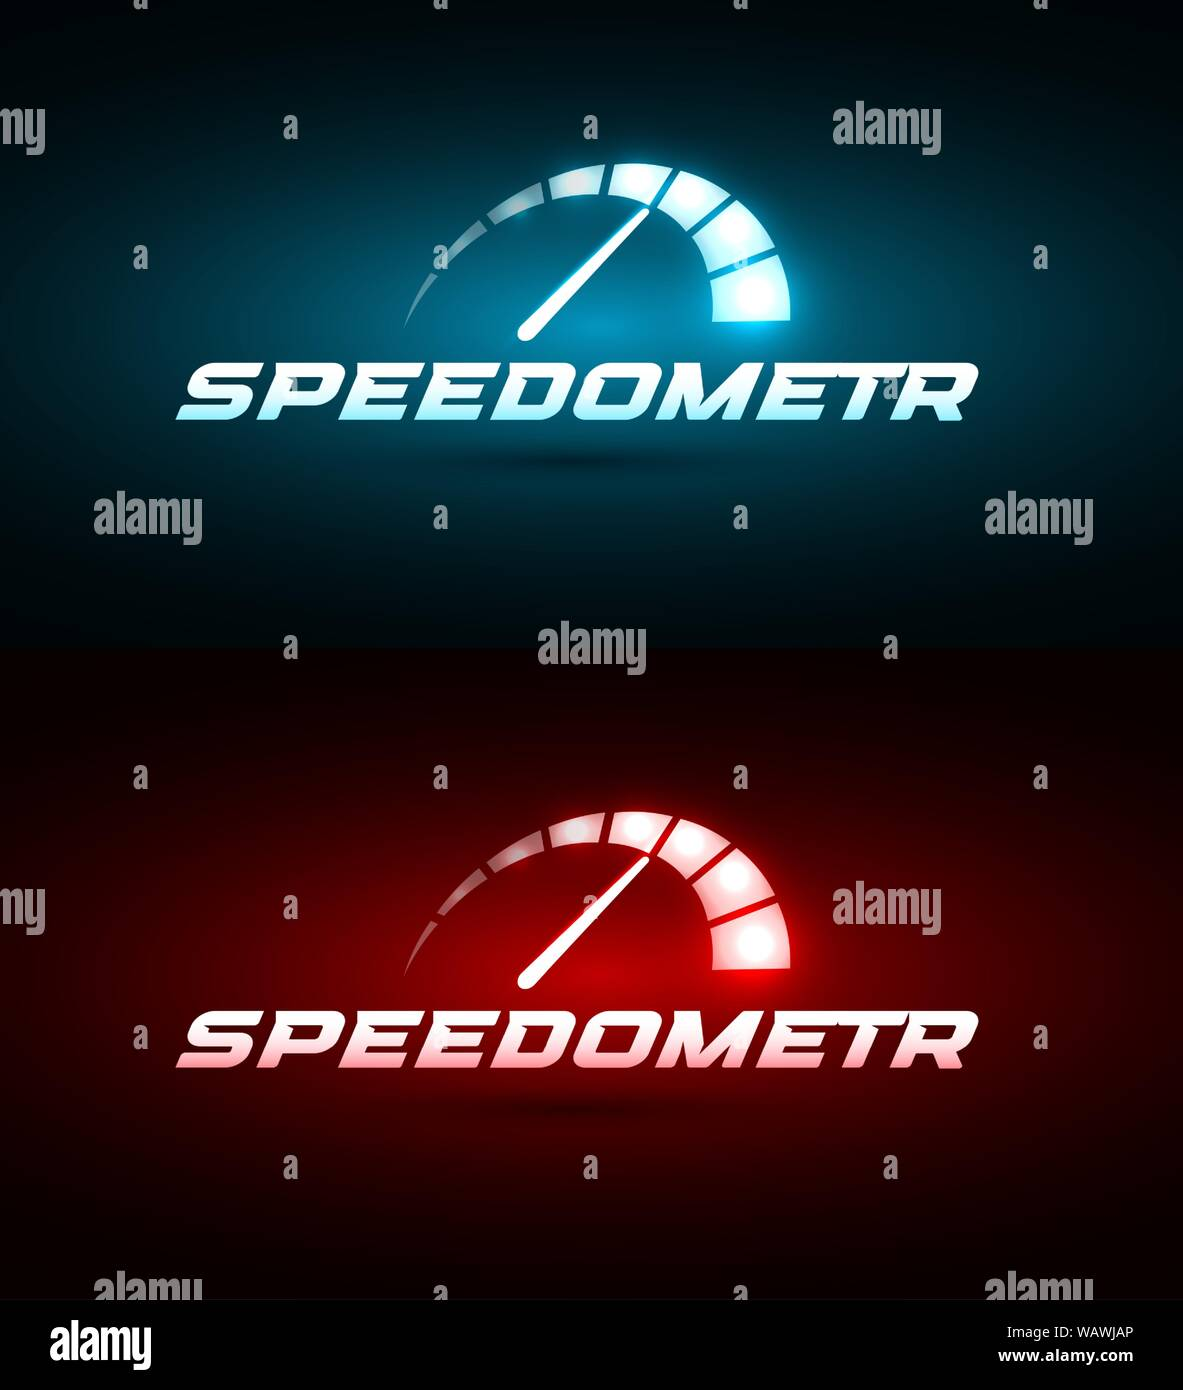 Speedometer Icon Blue And Red Glowing Speed Indicator Automotive Logo Template Modern Car Emblem Idea Auto Service Concept Design For Business Stock Vector Image Art Alamy